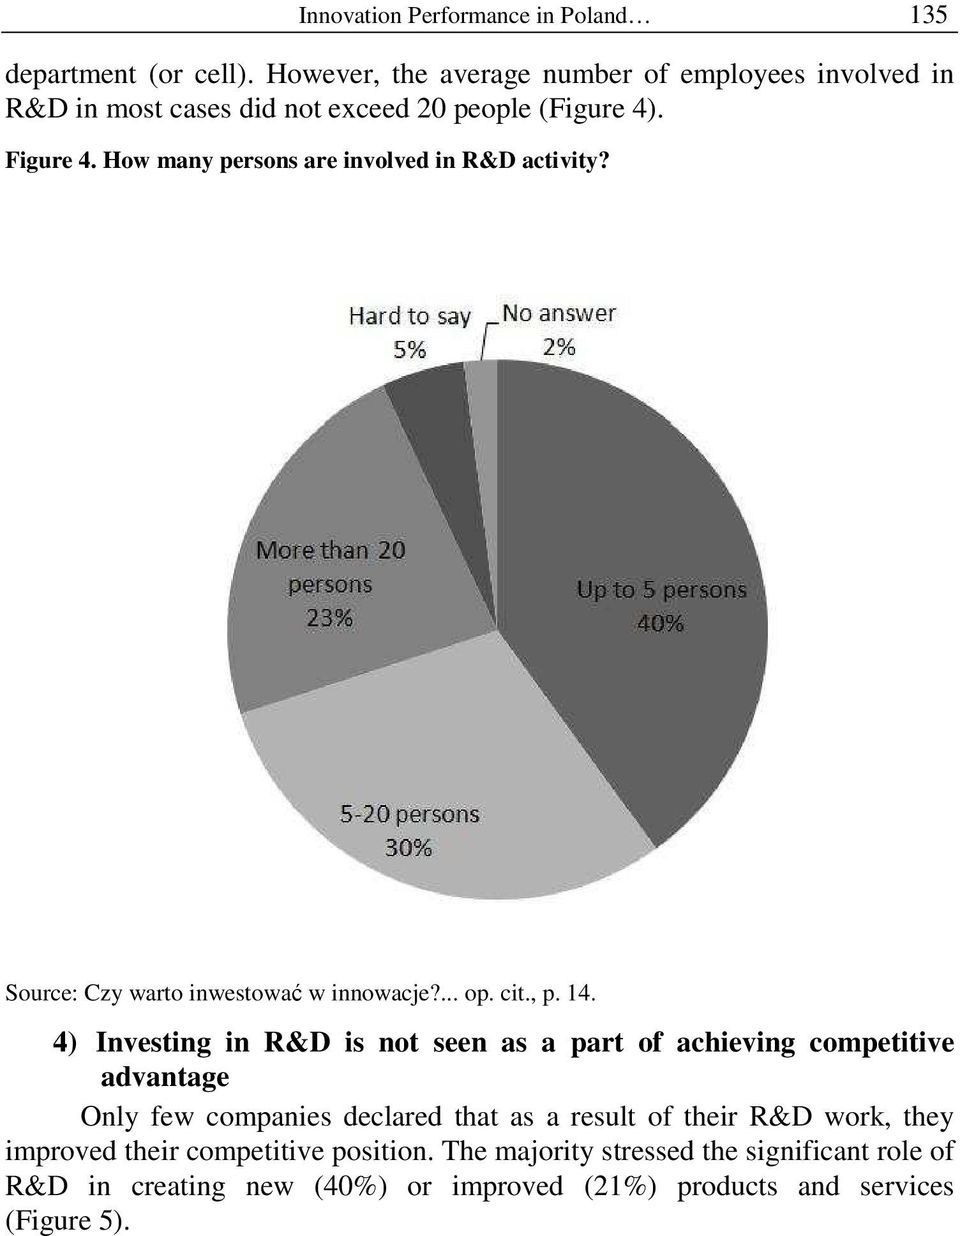 How many persons are involved in R&D activity? Source: Czy warto inwestować w innowacje?... op. cit., p. 14.